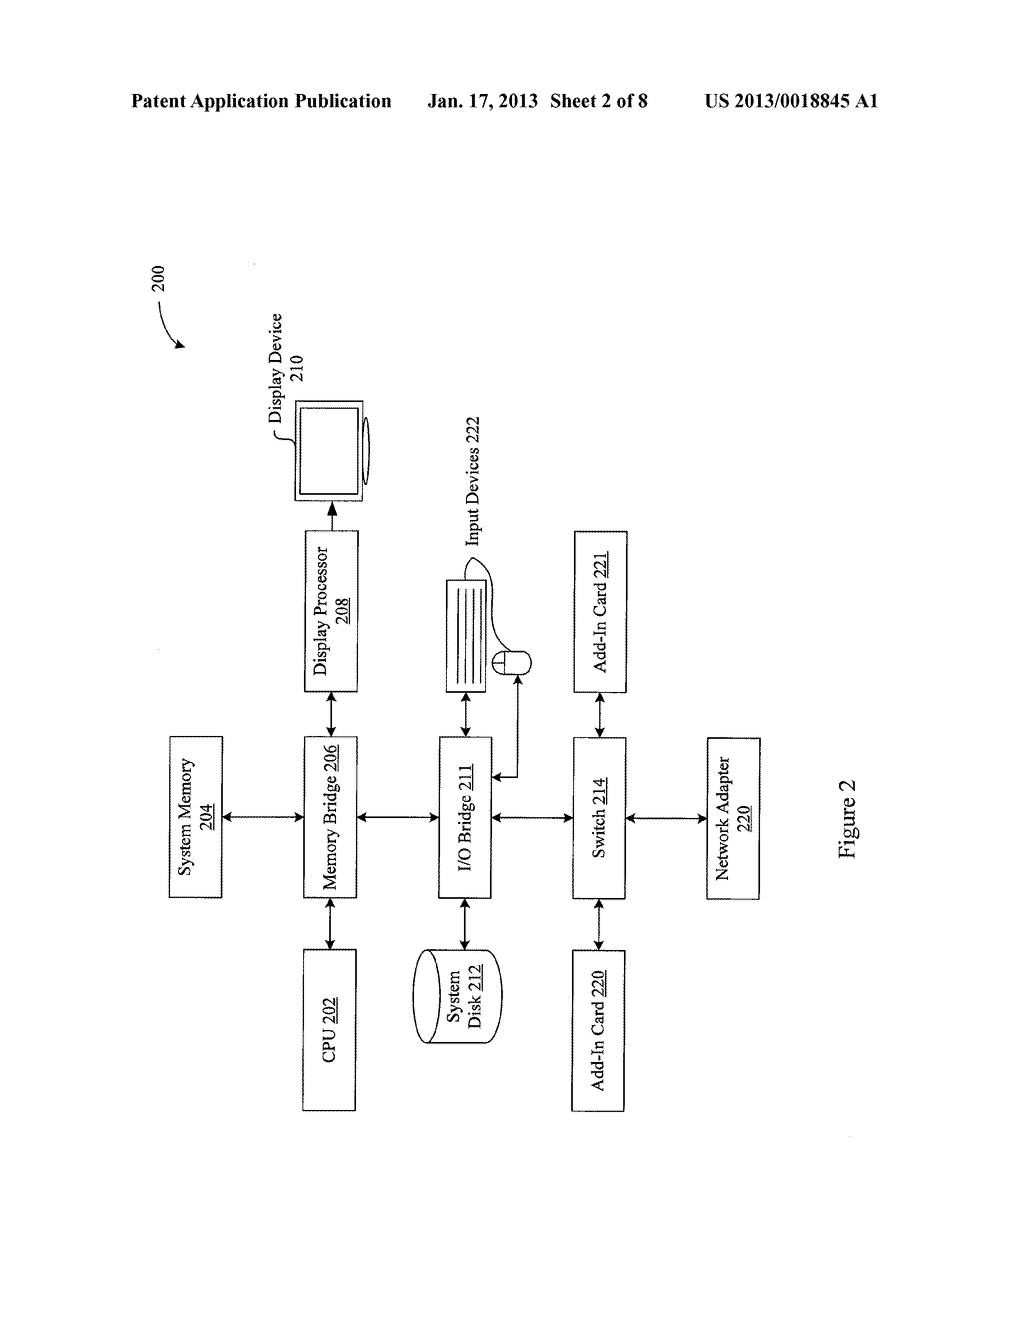 SYSTEM AND METHOD FOR MANAGING DUPLICATE FILE UPLOADSAANM Macaskill; DonAACI Los AltosAAST CAAACO USAAGP Macaskill; Don Los Altos CA USAANM Nichols; SamuelAACI Mountain ViewAAST CAAACO USAAGP Nichols; Samuel Mountain View CA US - diagram, schematic, and image 03